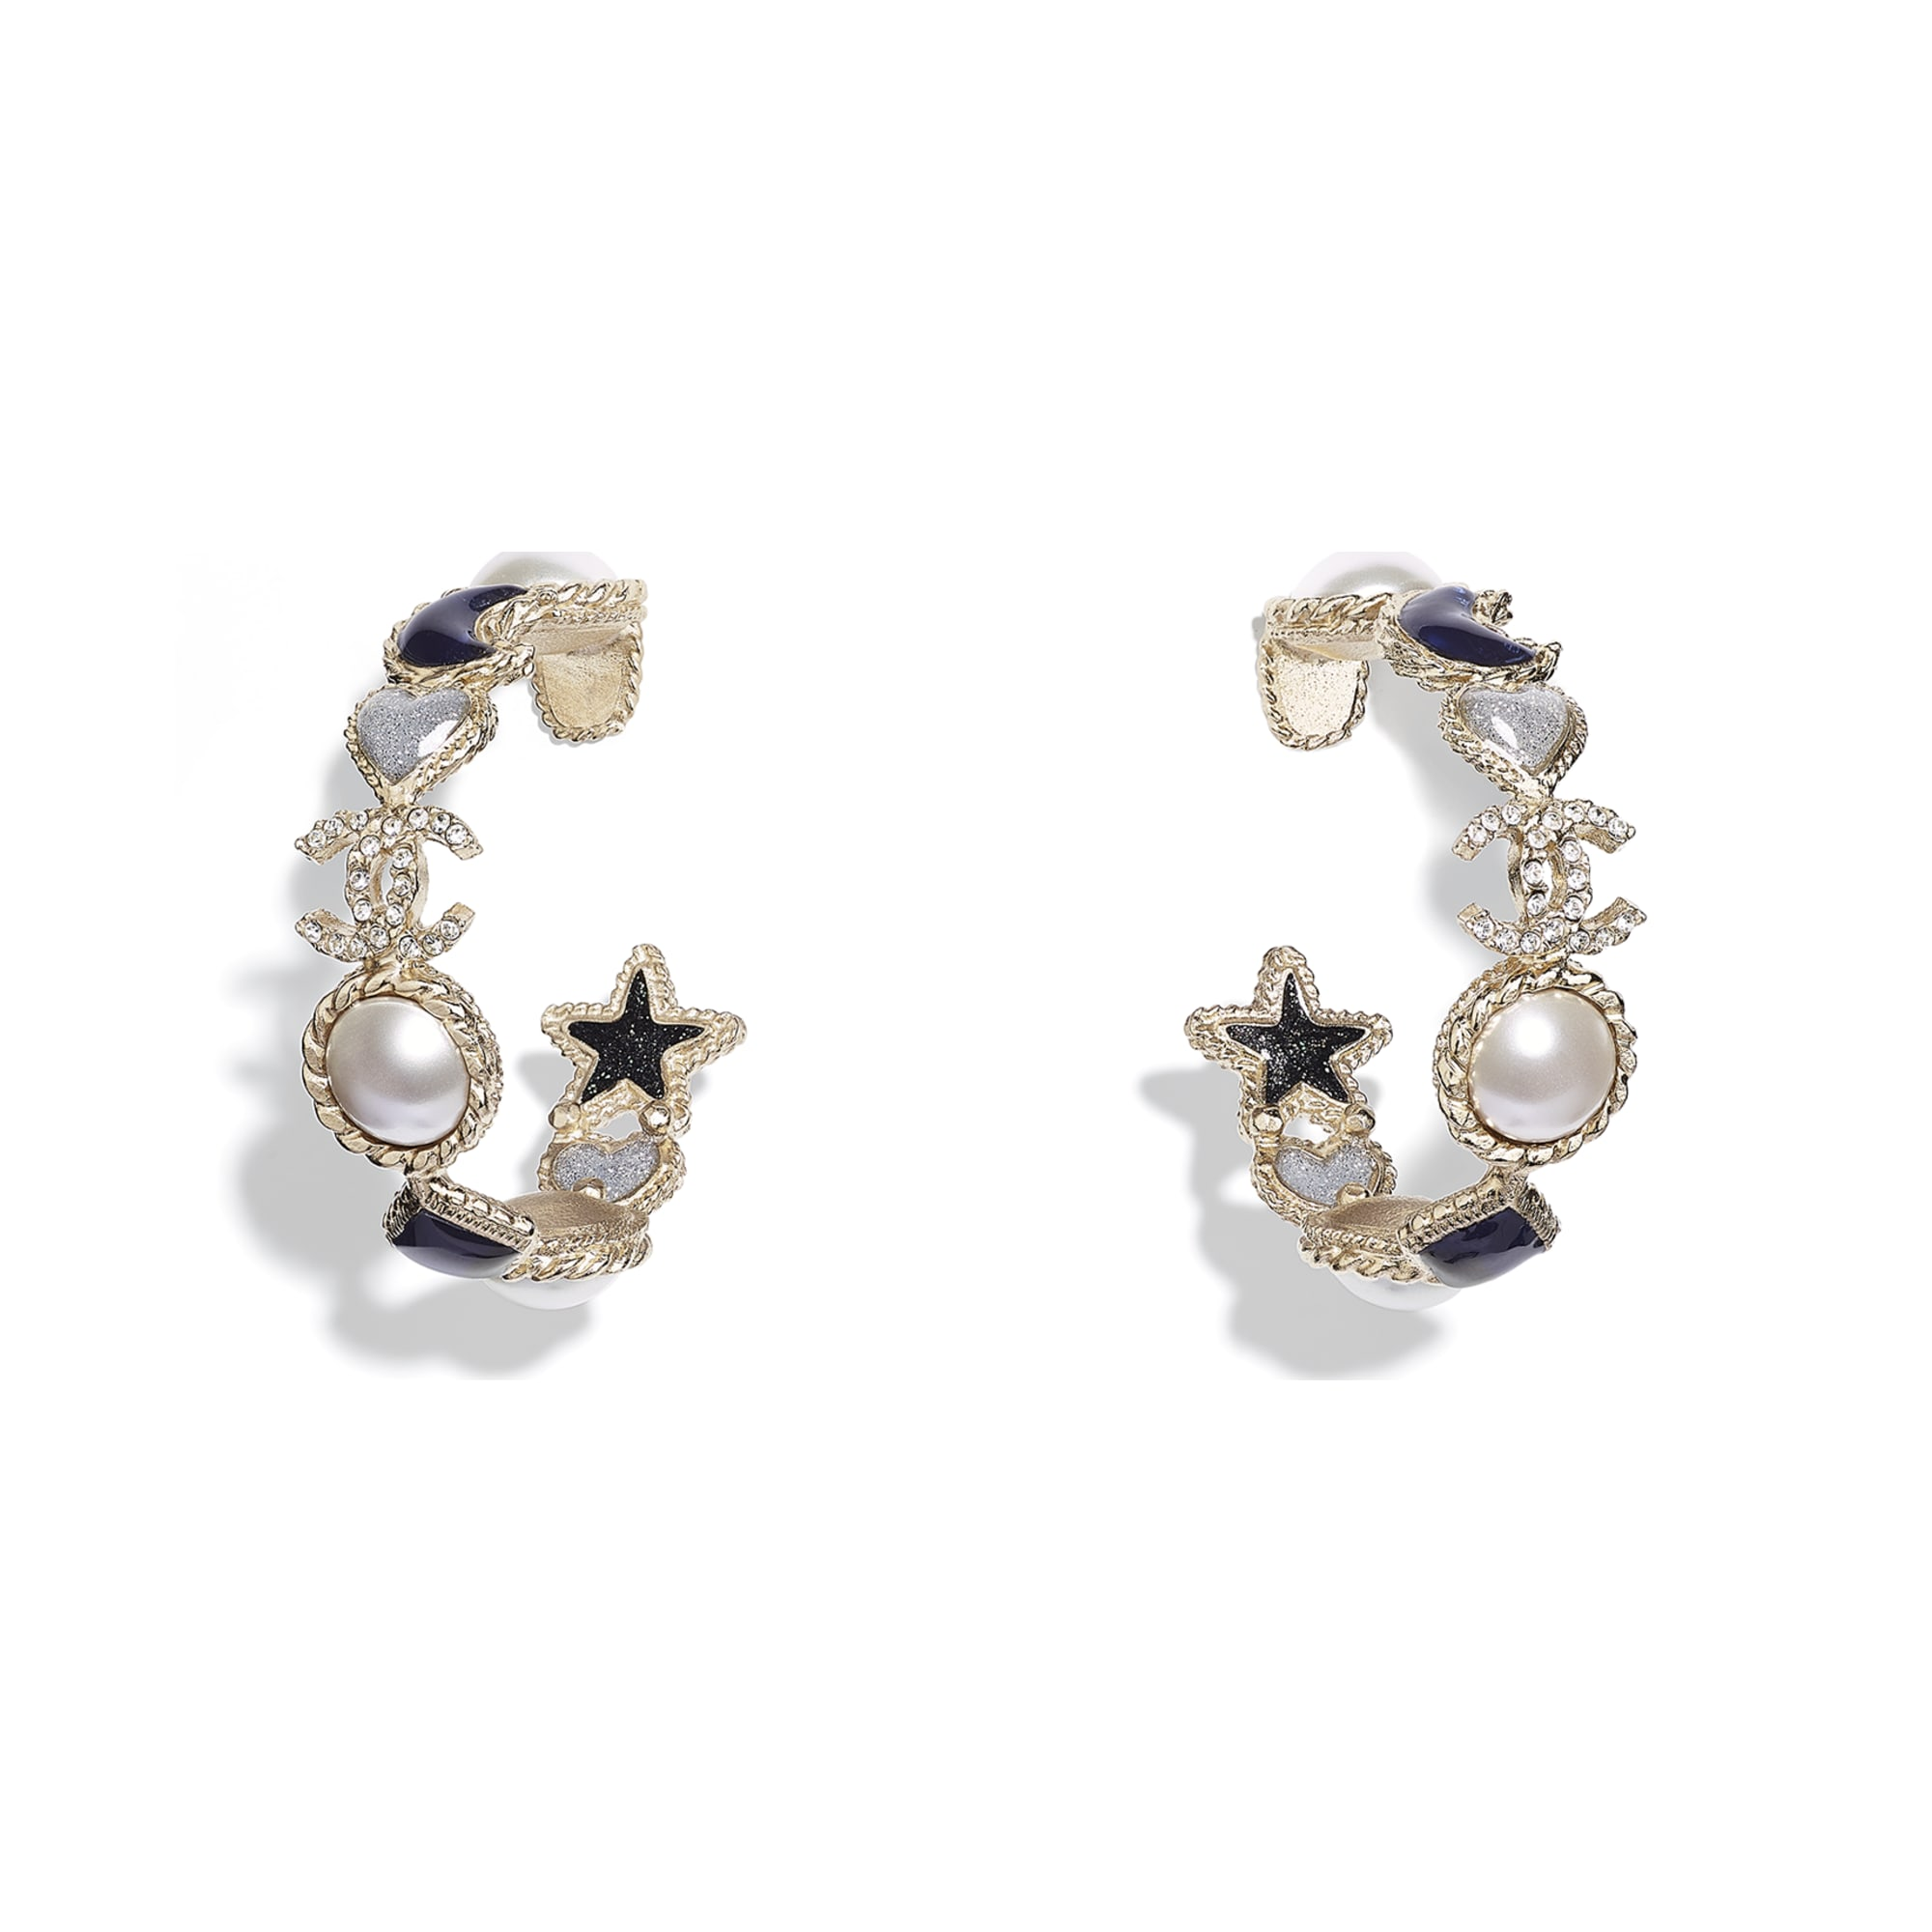 Earrings - Gold, Pearly White, Crystal, Blue & Gray - Metal, Glass Pearls, Diamanté & Resin - CHANEL - Default view - see standard sized version